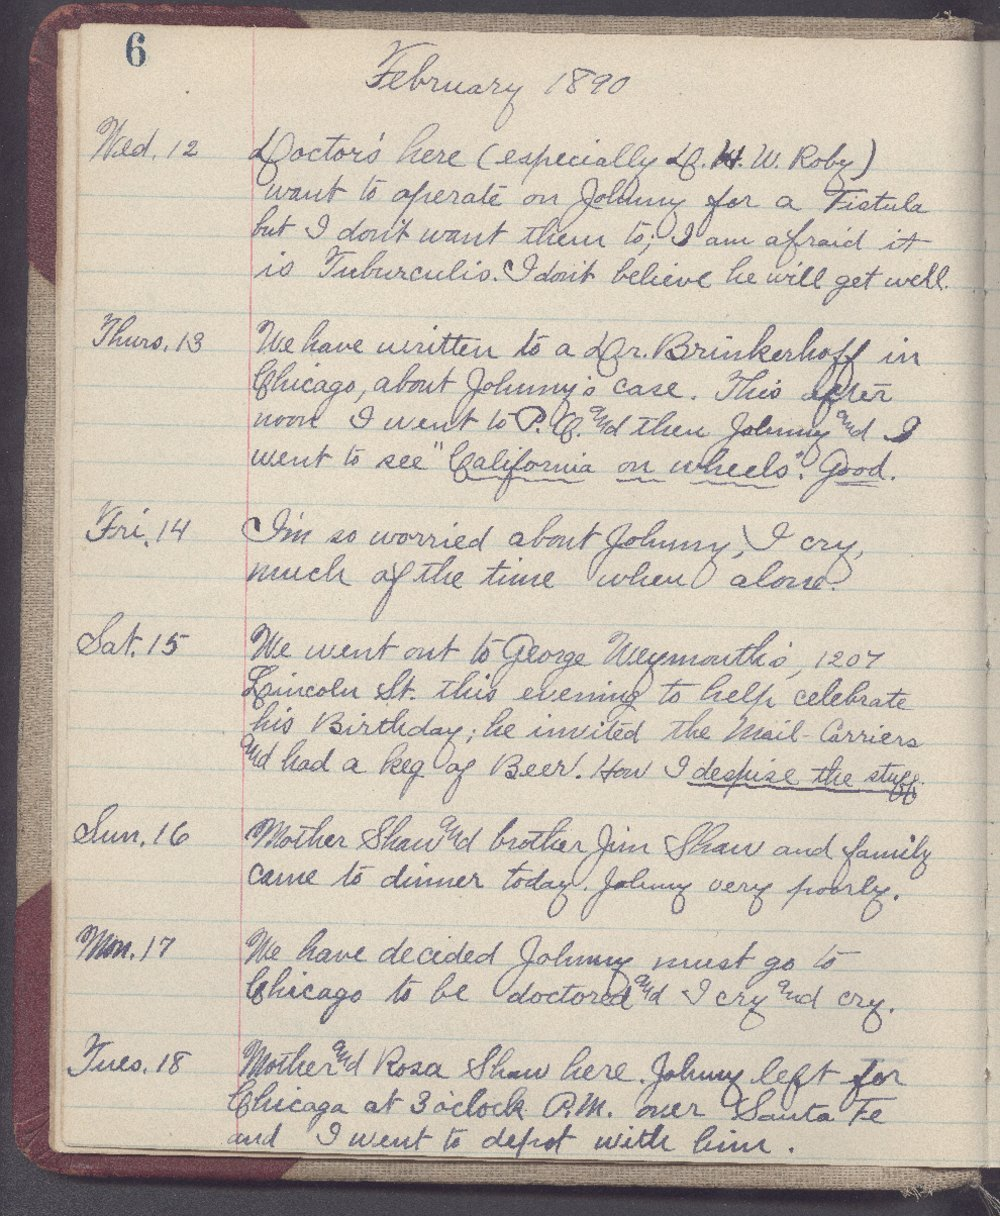 Martha Farnsworth diary - 6